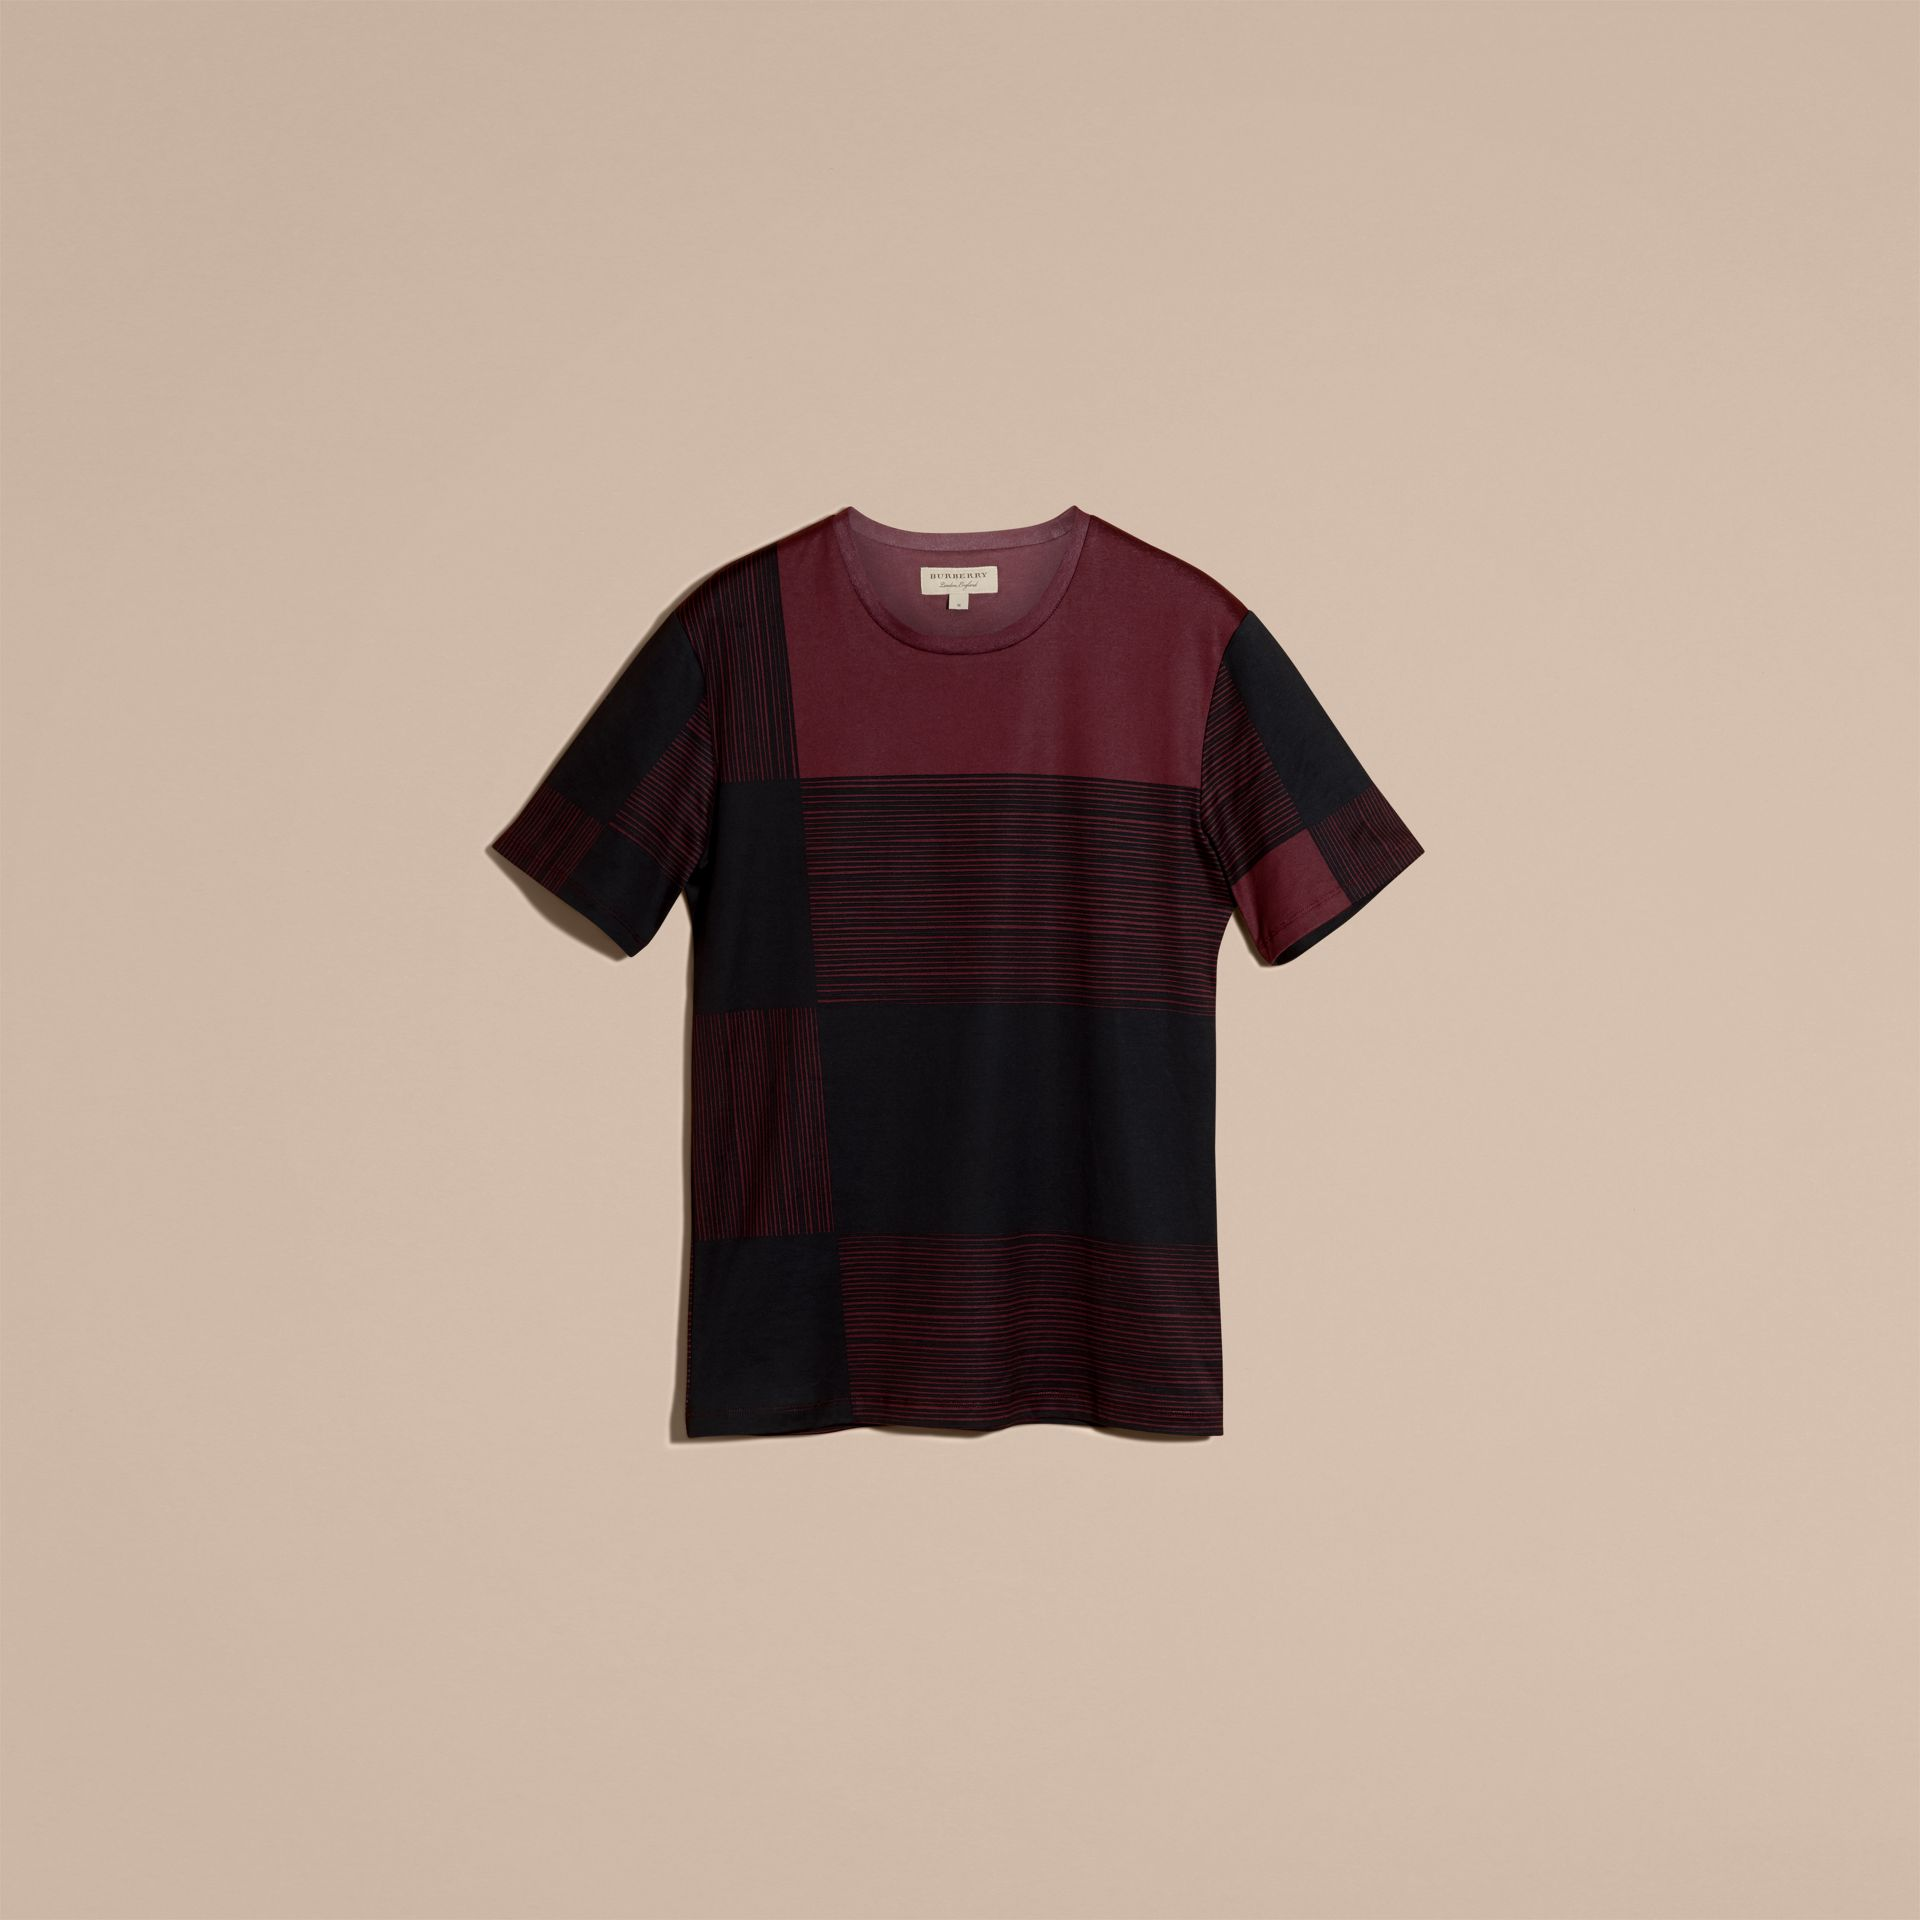 Burgundy Check Print Cotton T-shirt Burgundy - gallery image 4